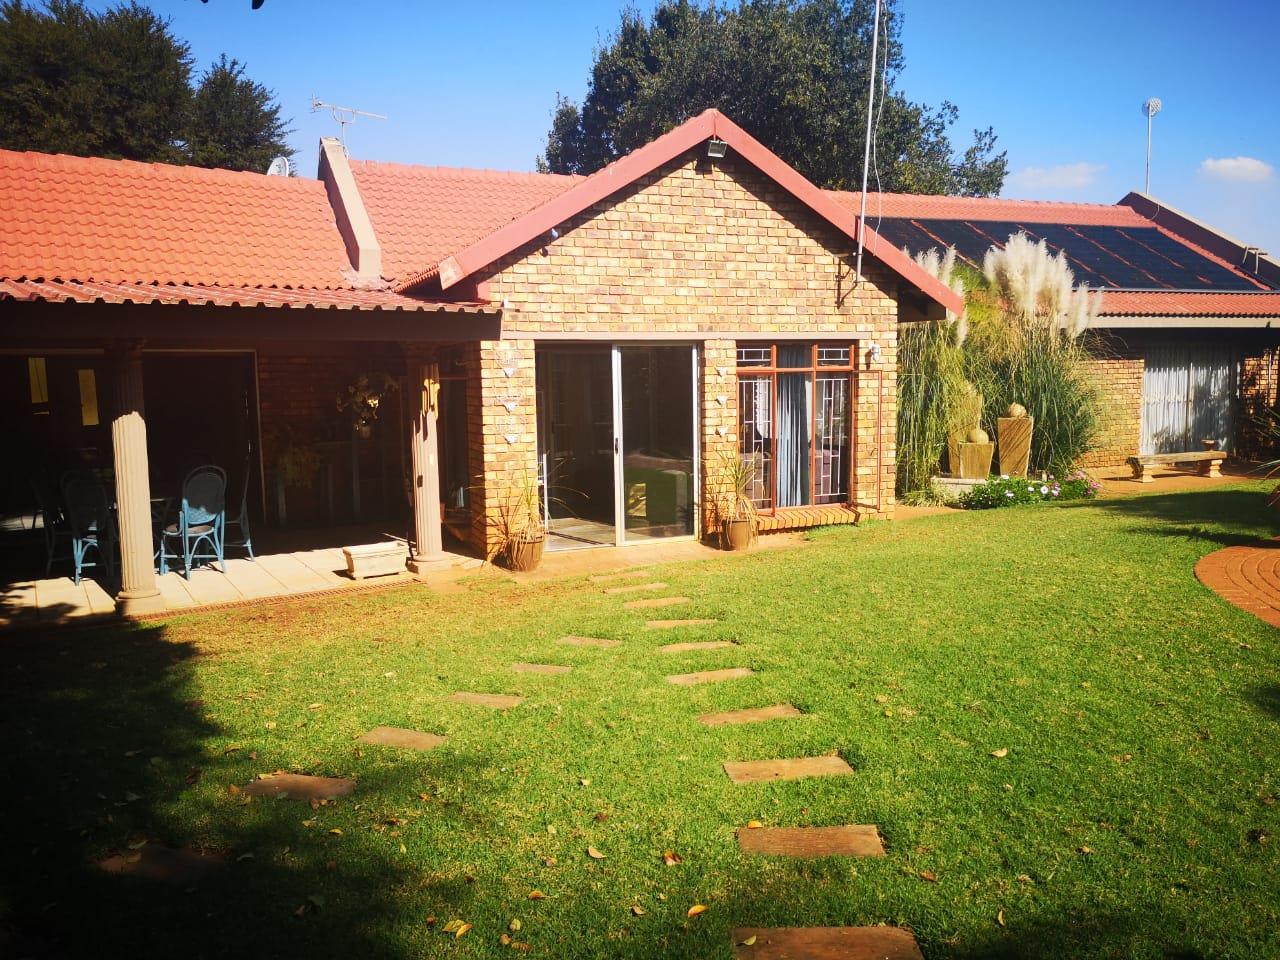 3 Bedroom House For Sale in Dennesig